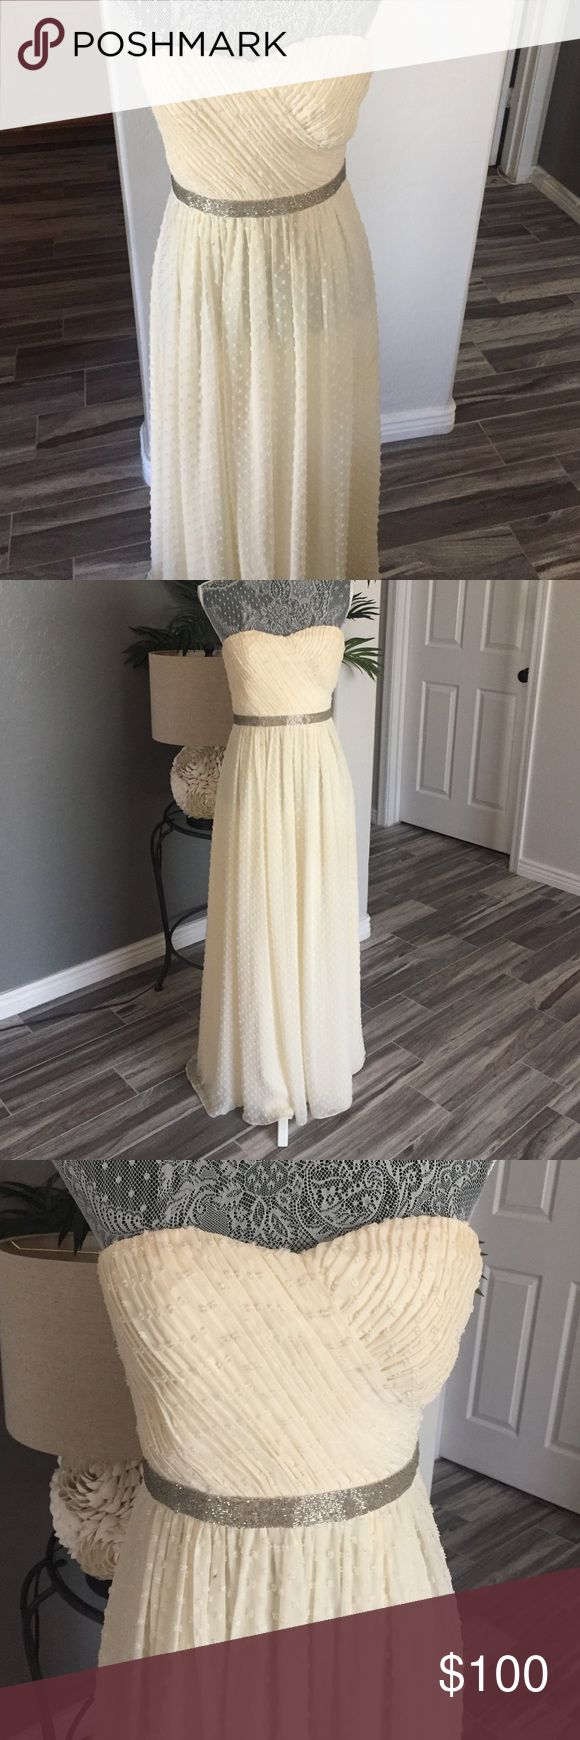 Ivanka trump dress Classy beige sheath dress with attached beaded waist belt. Never used. Size 4 perfect for any special occasion Ivanka Trump Dresses Strapless